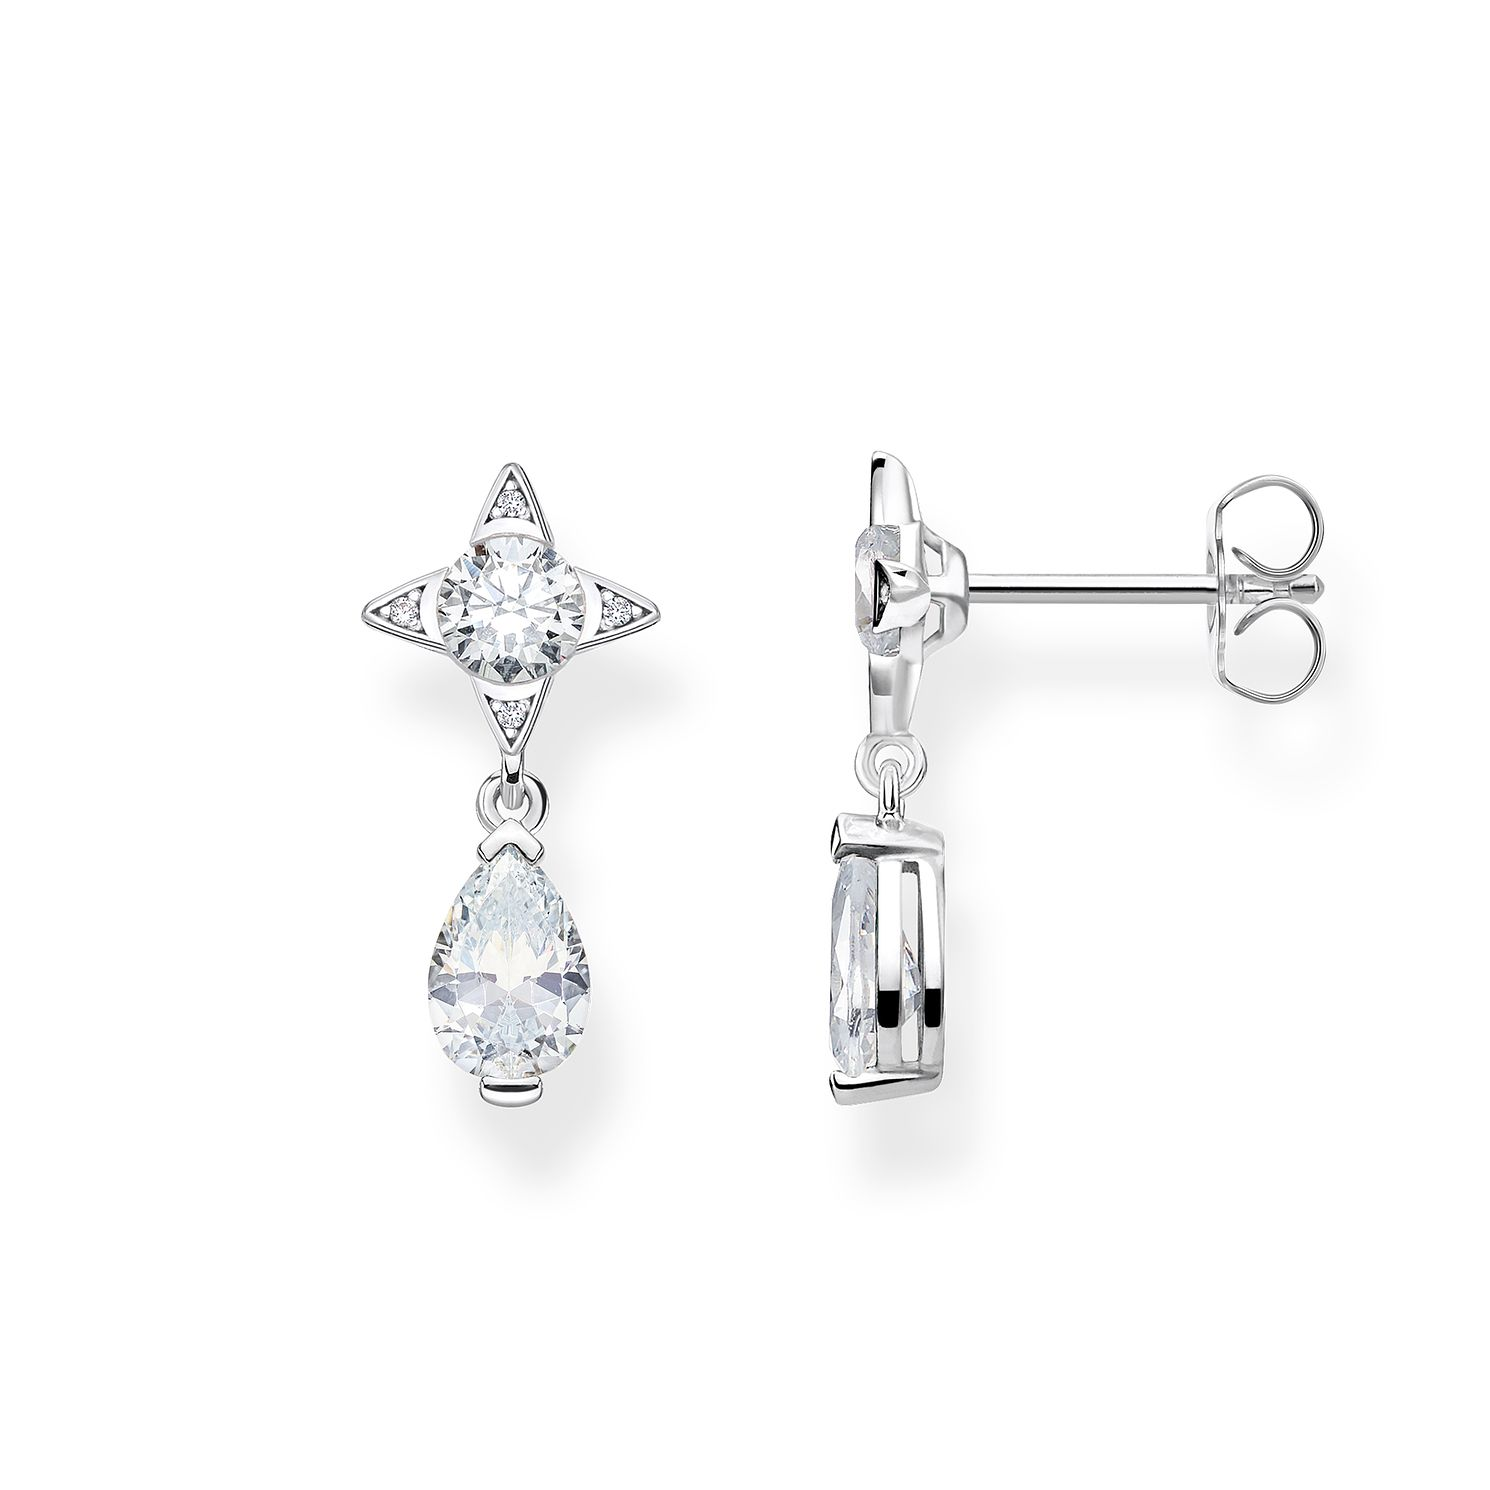 Thomas Sabo Sterling Silver Cubic Zirconia Drop Earrings - Product number 4007700